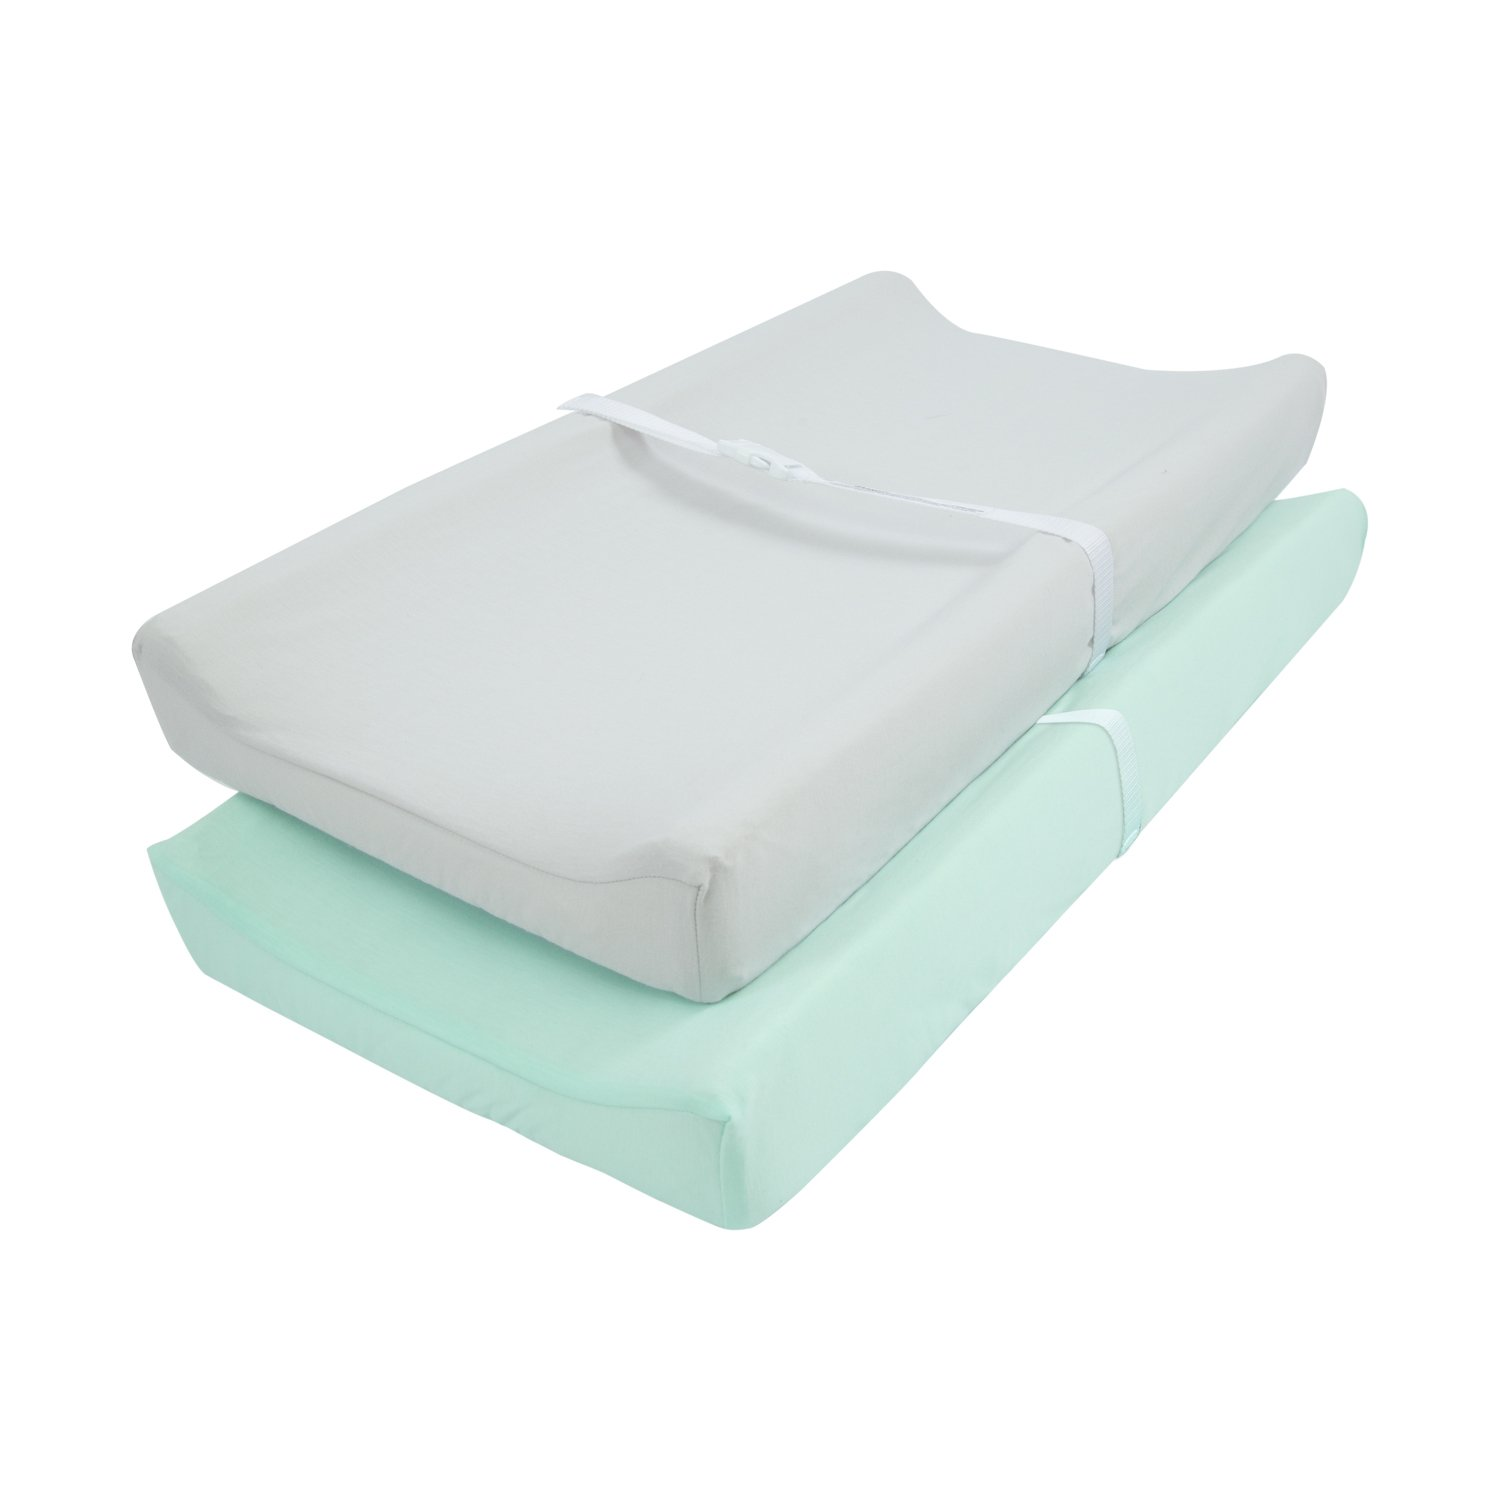 TILLYOU Jersey Knit Ultra Soft Changing Pad Cover Set-Cradle Sheet Unisex Change Table Sheets